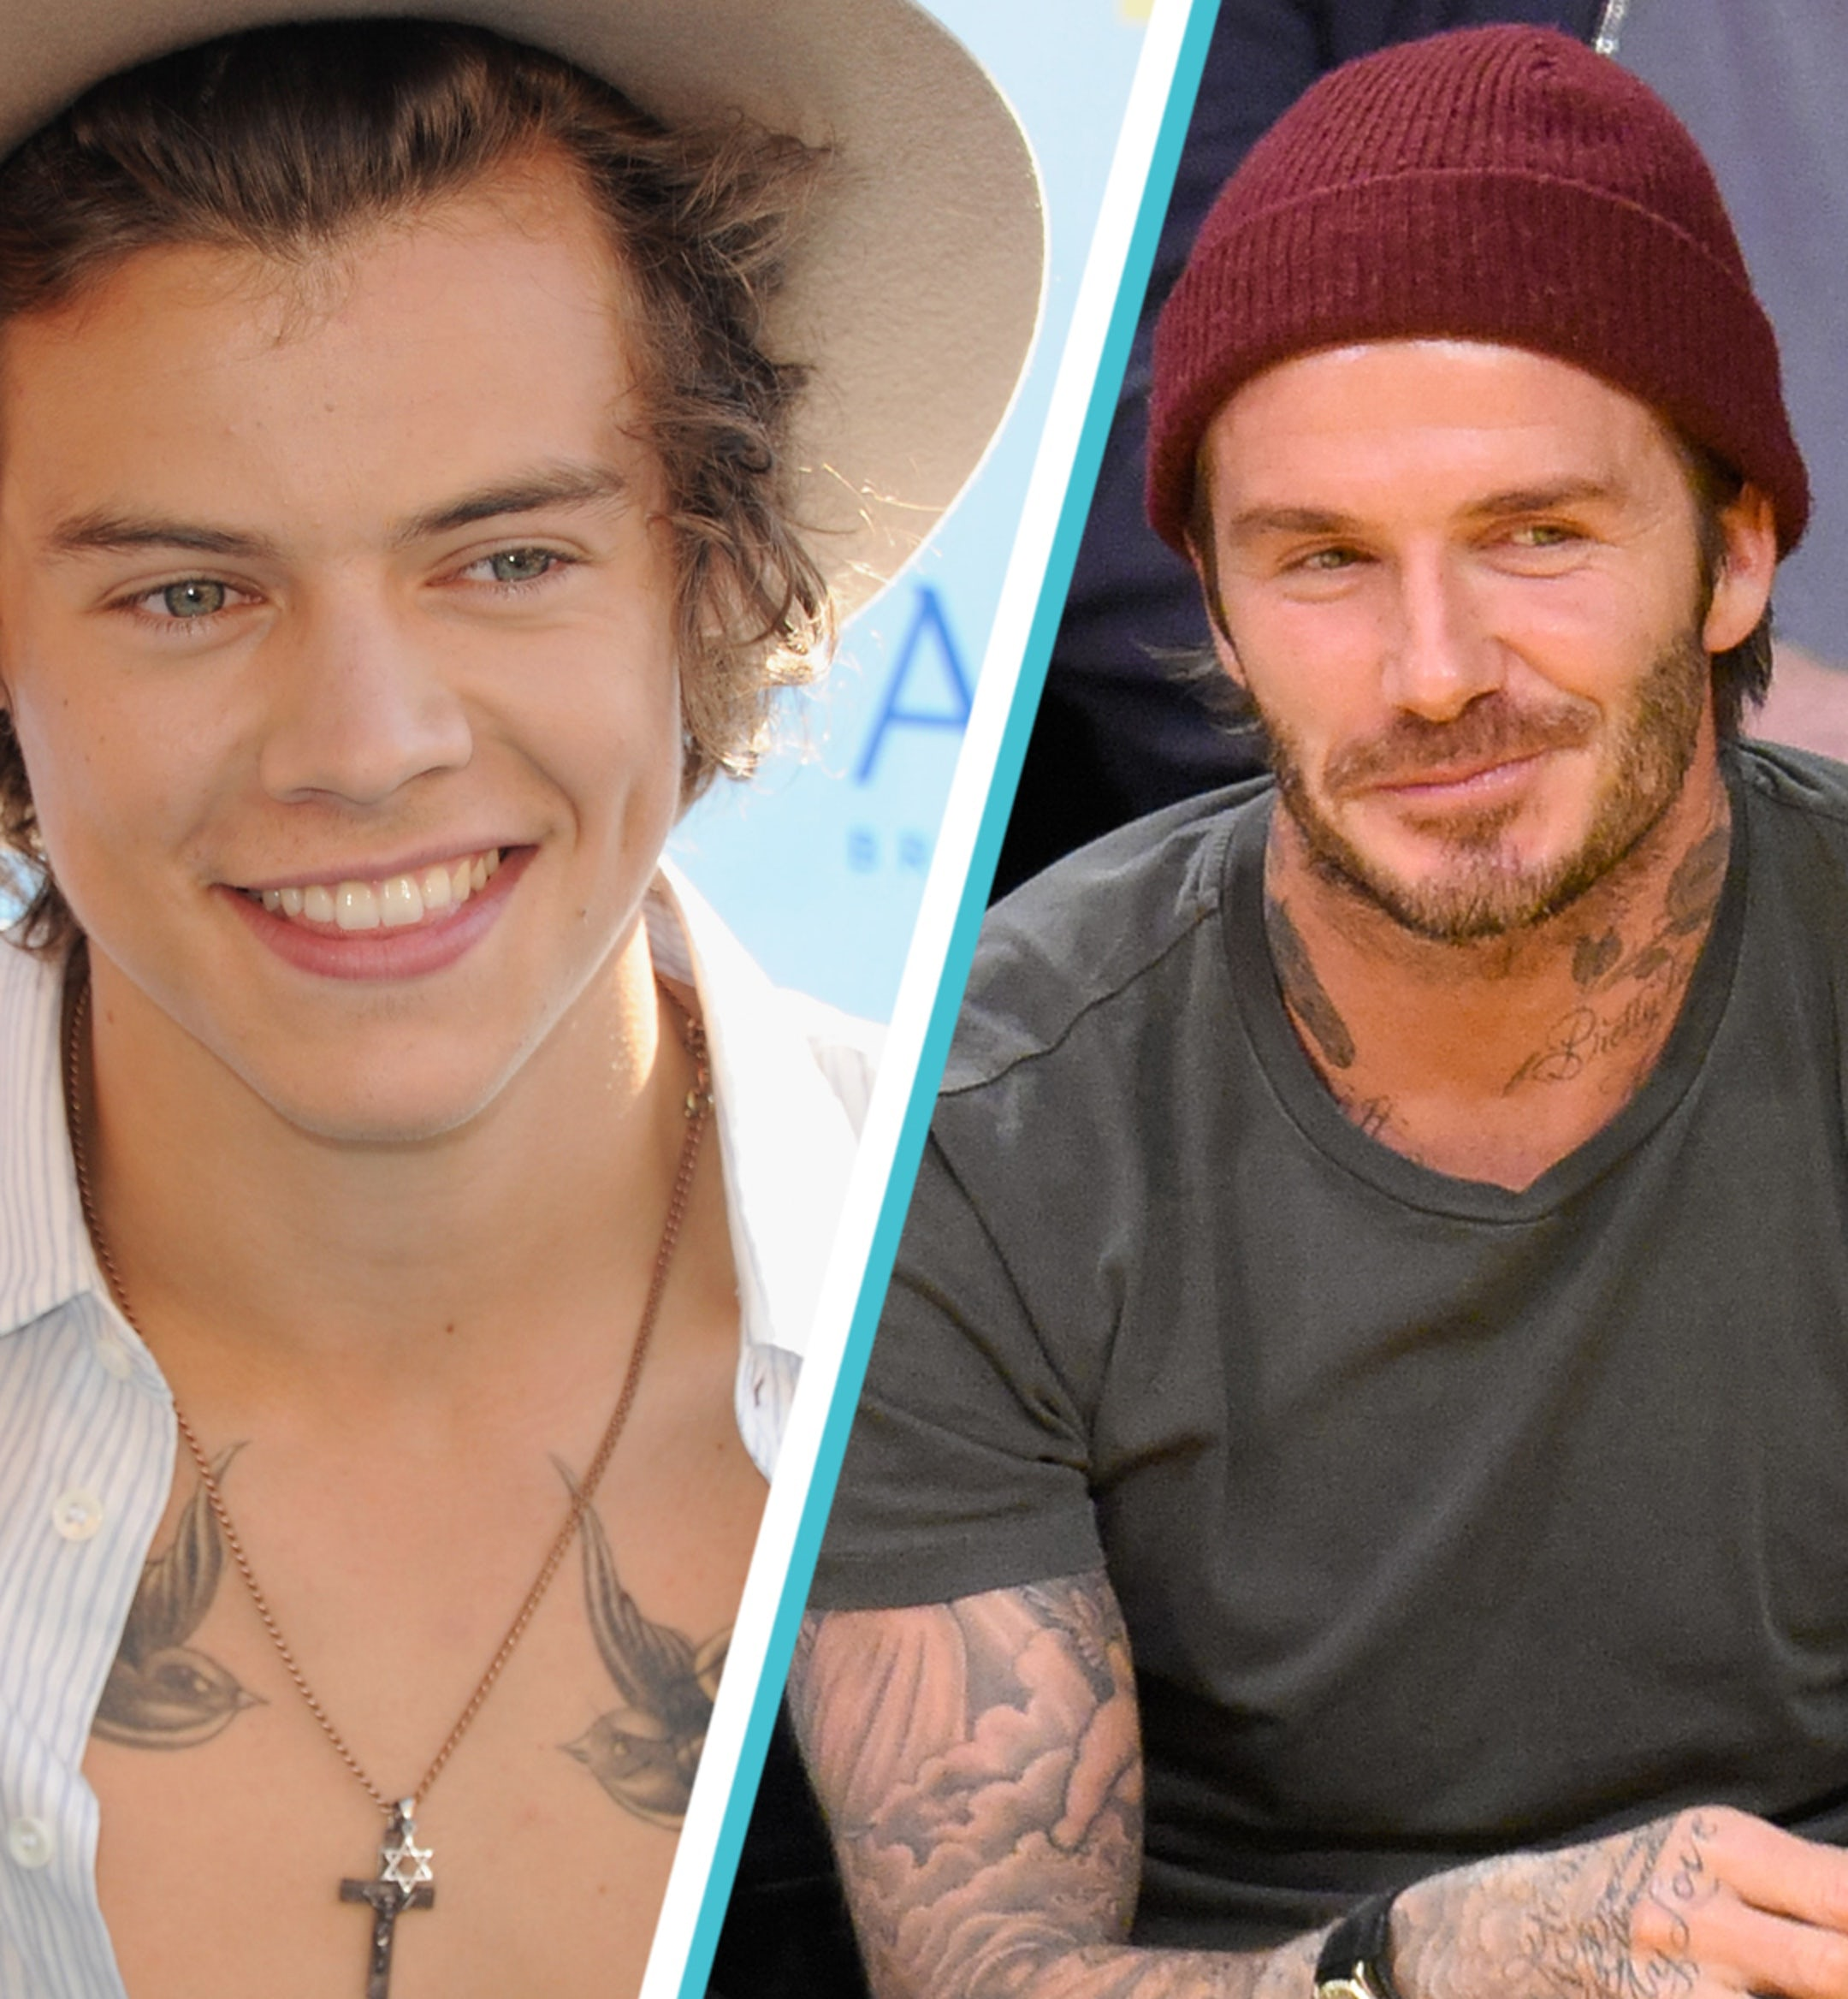 mark mahone davidbeckham harrystyles mobile Hero 0